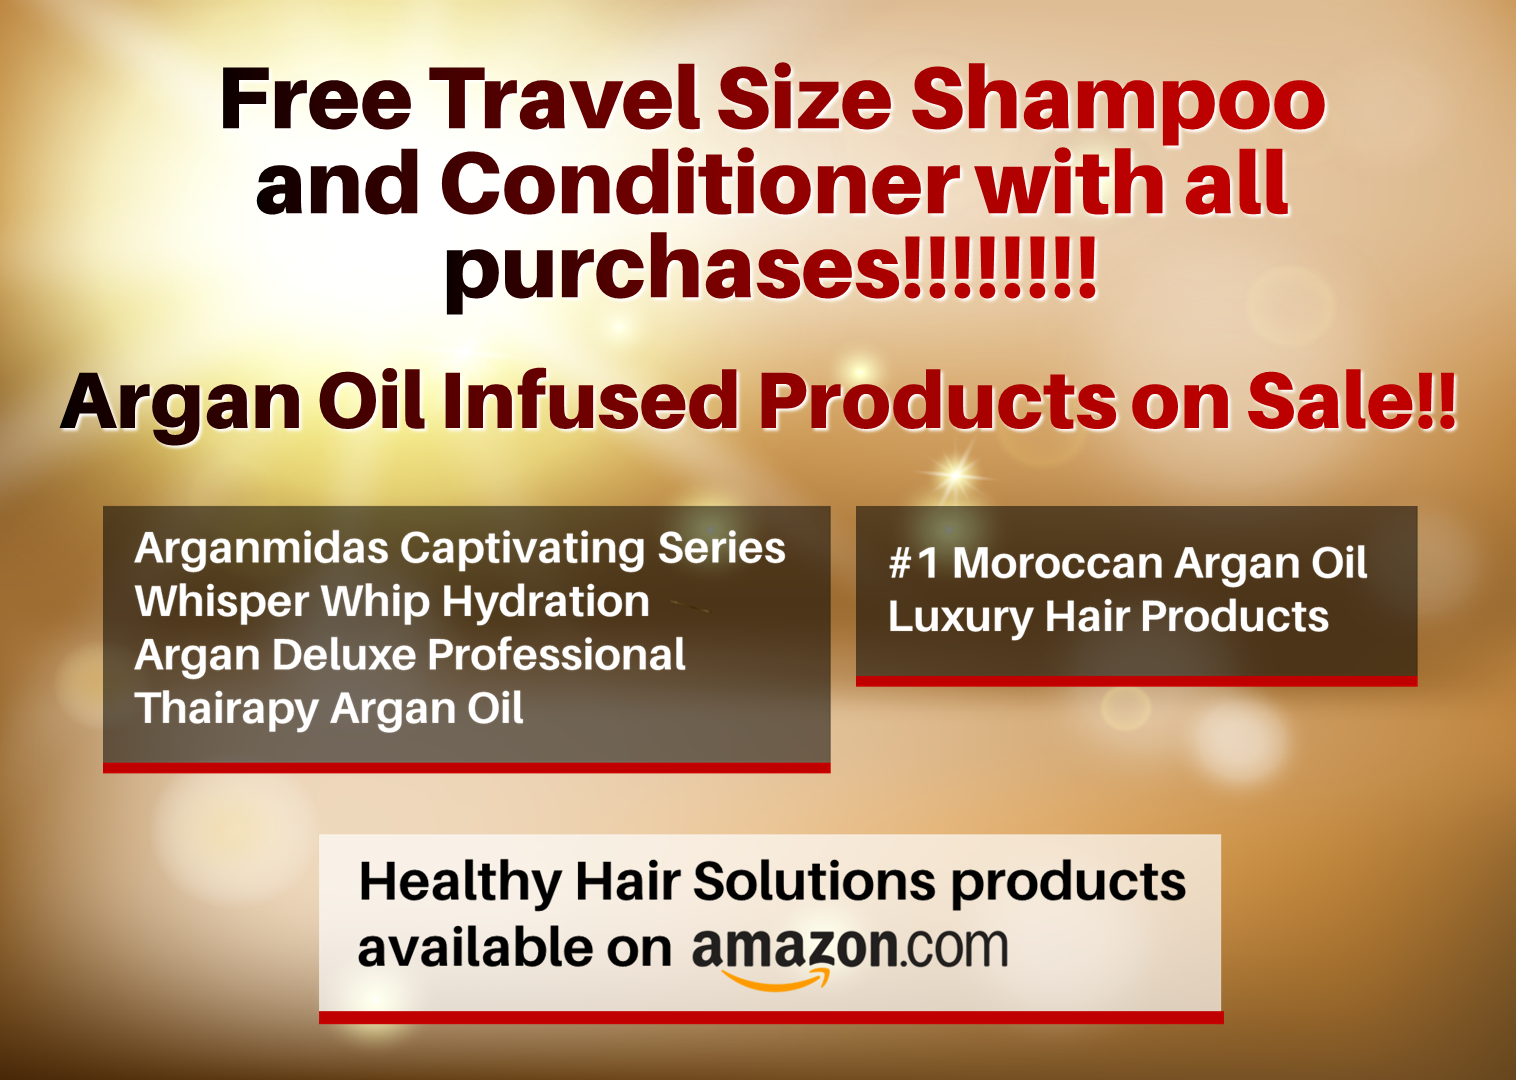 banner-ad-with-products-and-free-sc.png